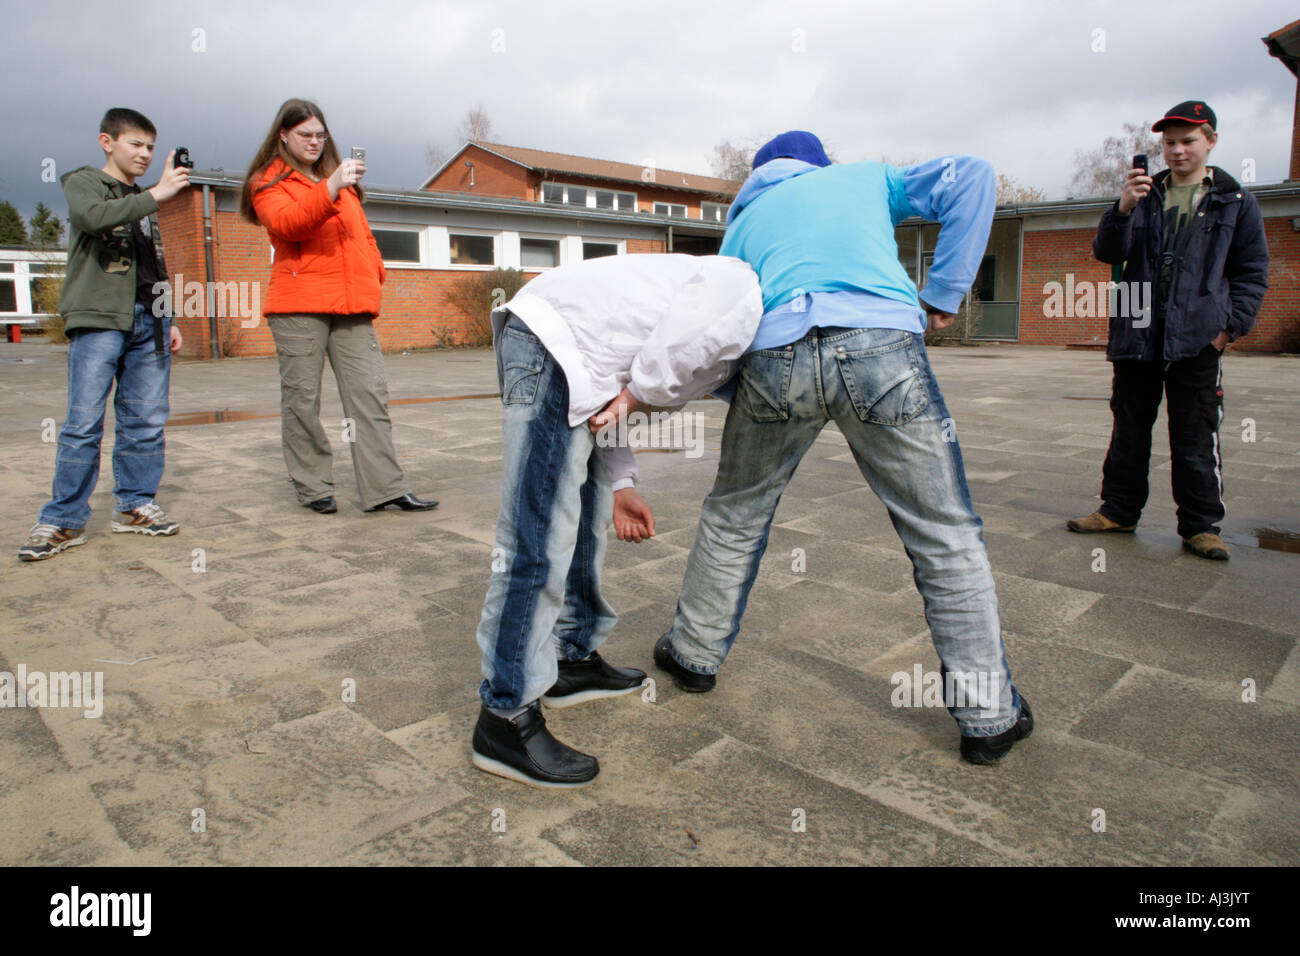 two fighting boys are being filmed by three other teenagers with their mobile phones - Stock Image